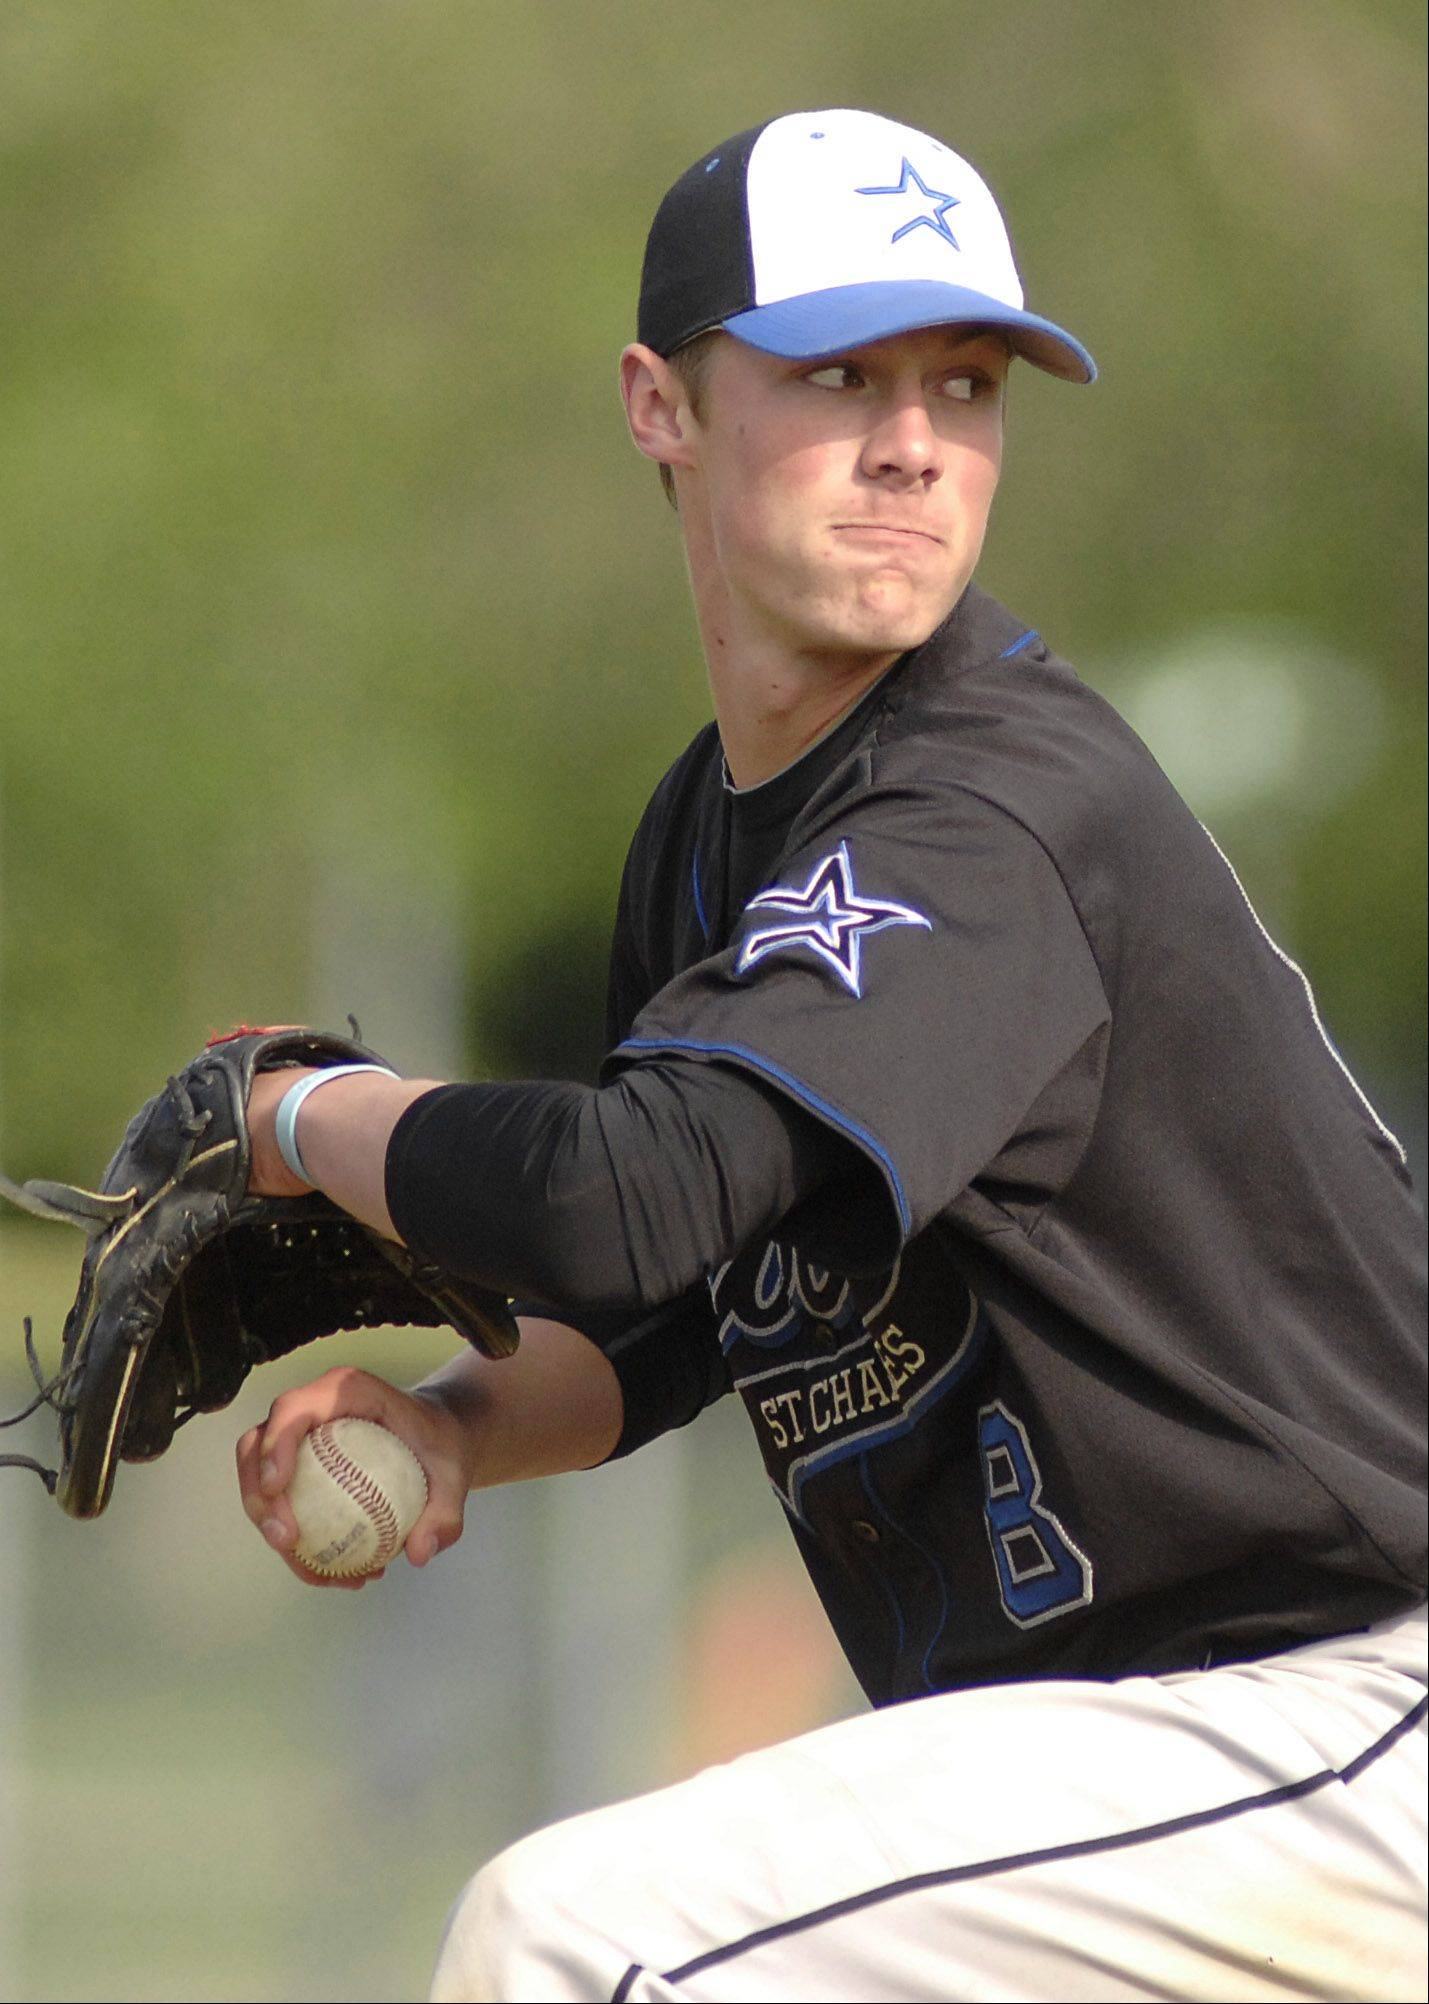 St. Charles North pitcher Jake Johansmeier on Thursday, April 26. 8